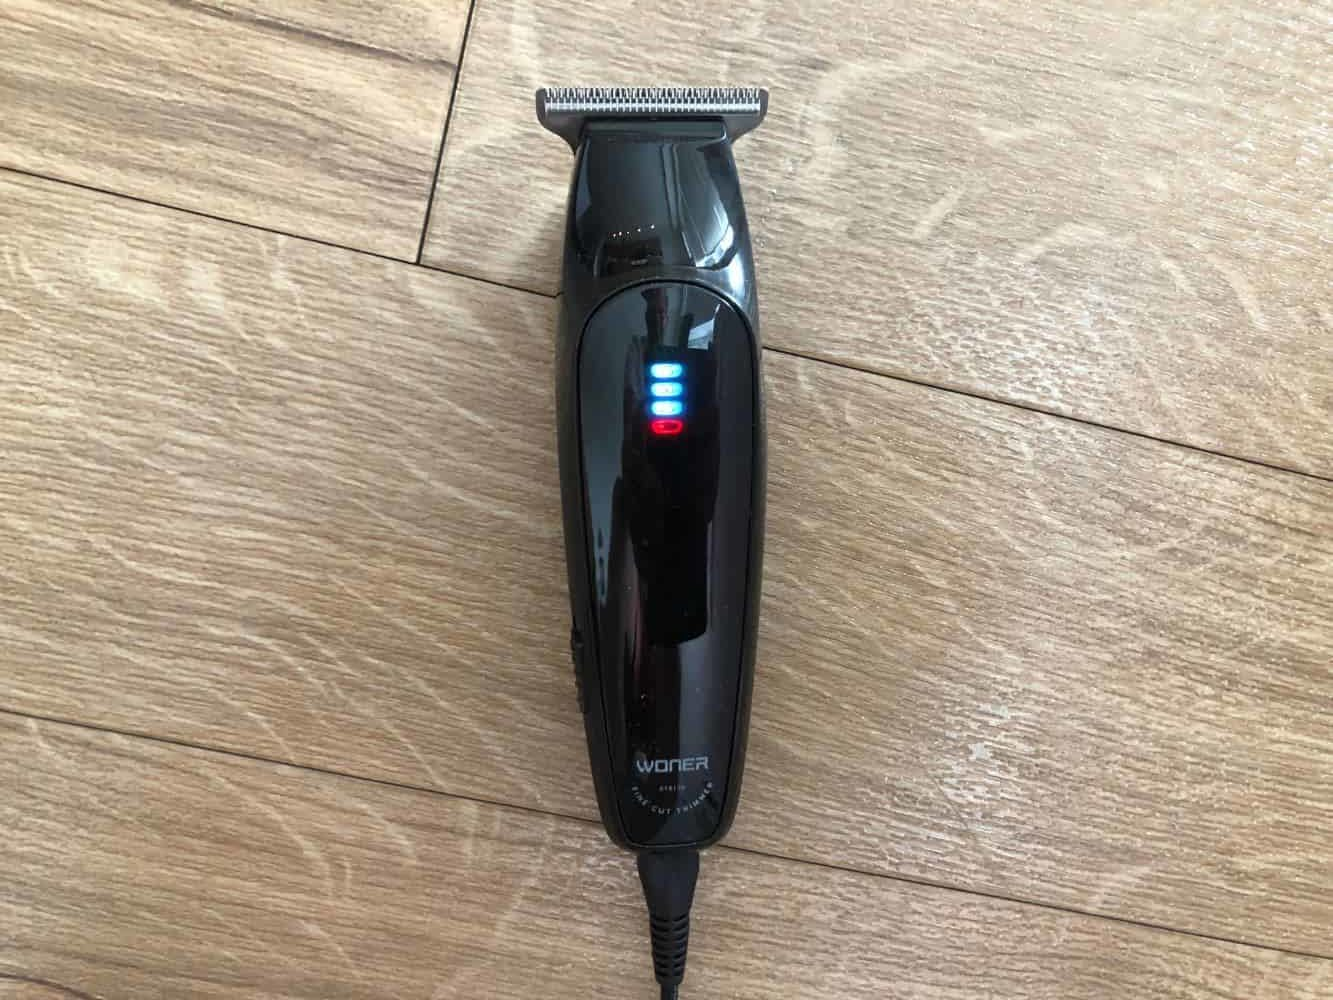 Charging indicator on Woner beard trimmer